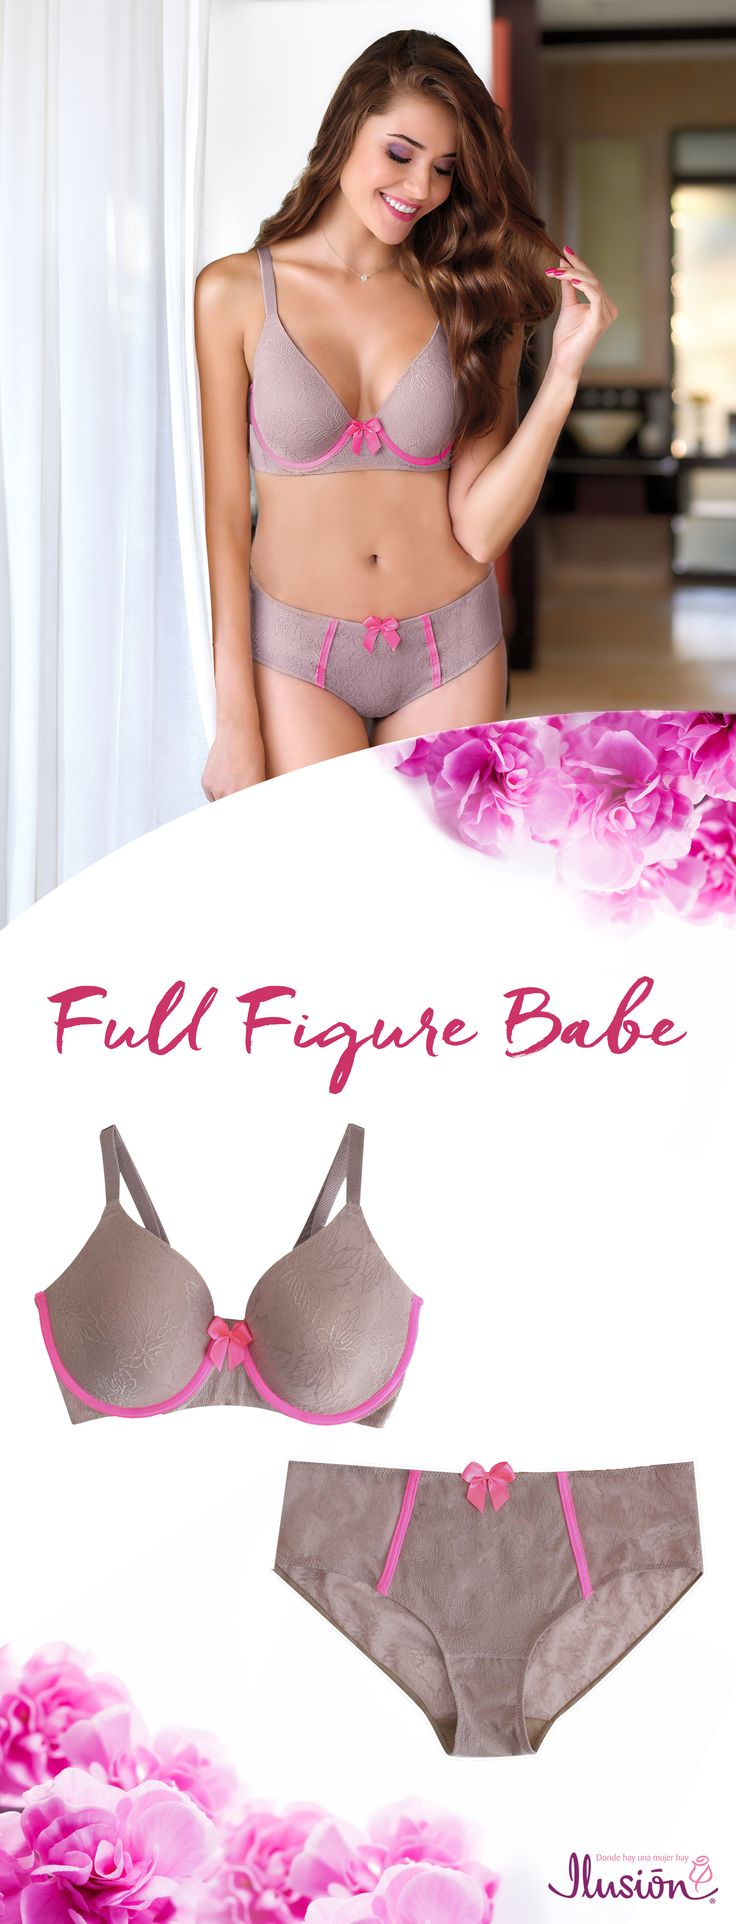 Cute Lingerie for Full Figure body times. Plus size can be super cute and stylish too! Lets say good bye to ugly bras!